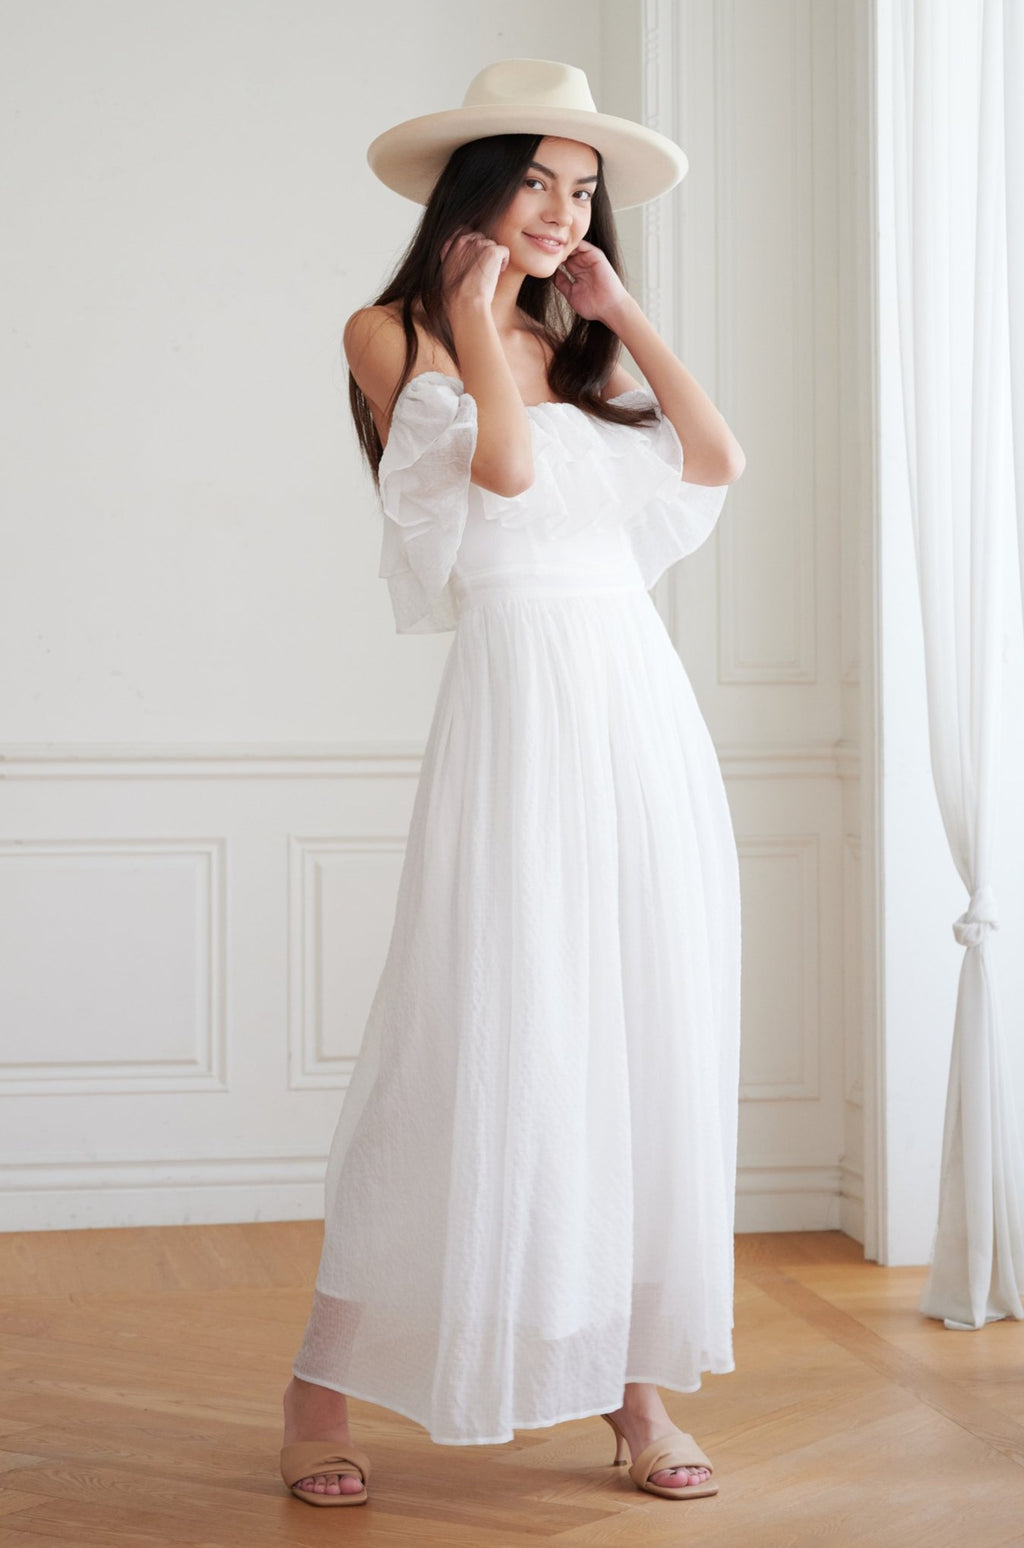 Sweeter than you off shoulder maxi dress in white (with Belt)